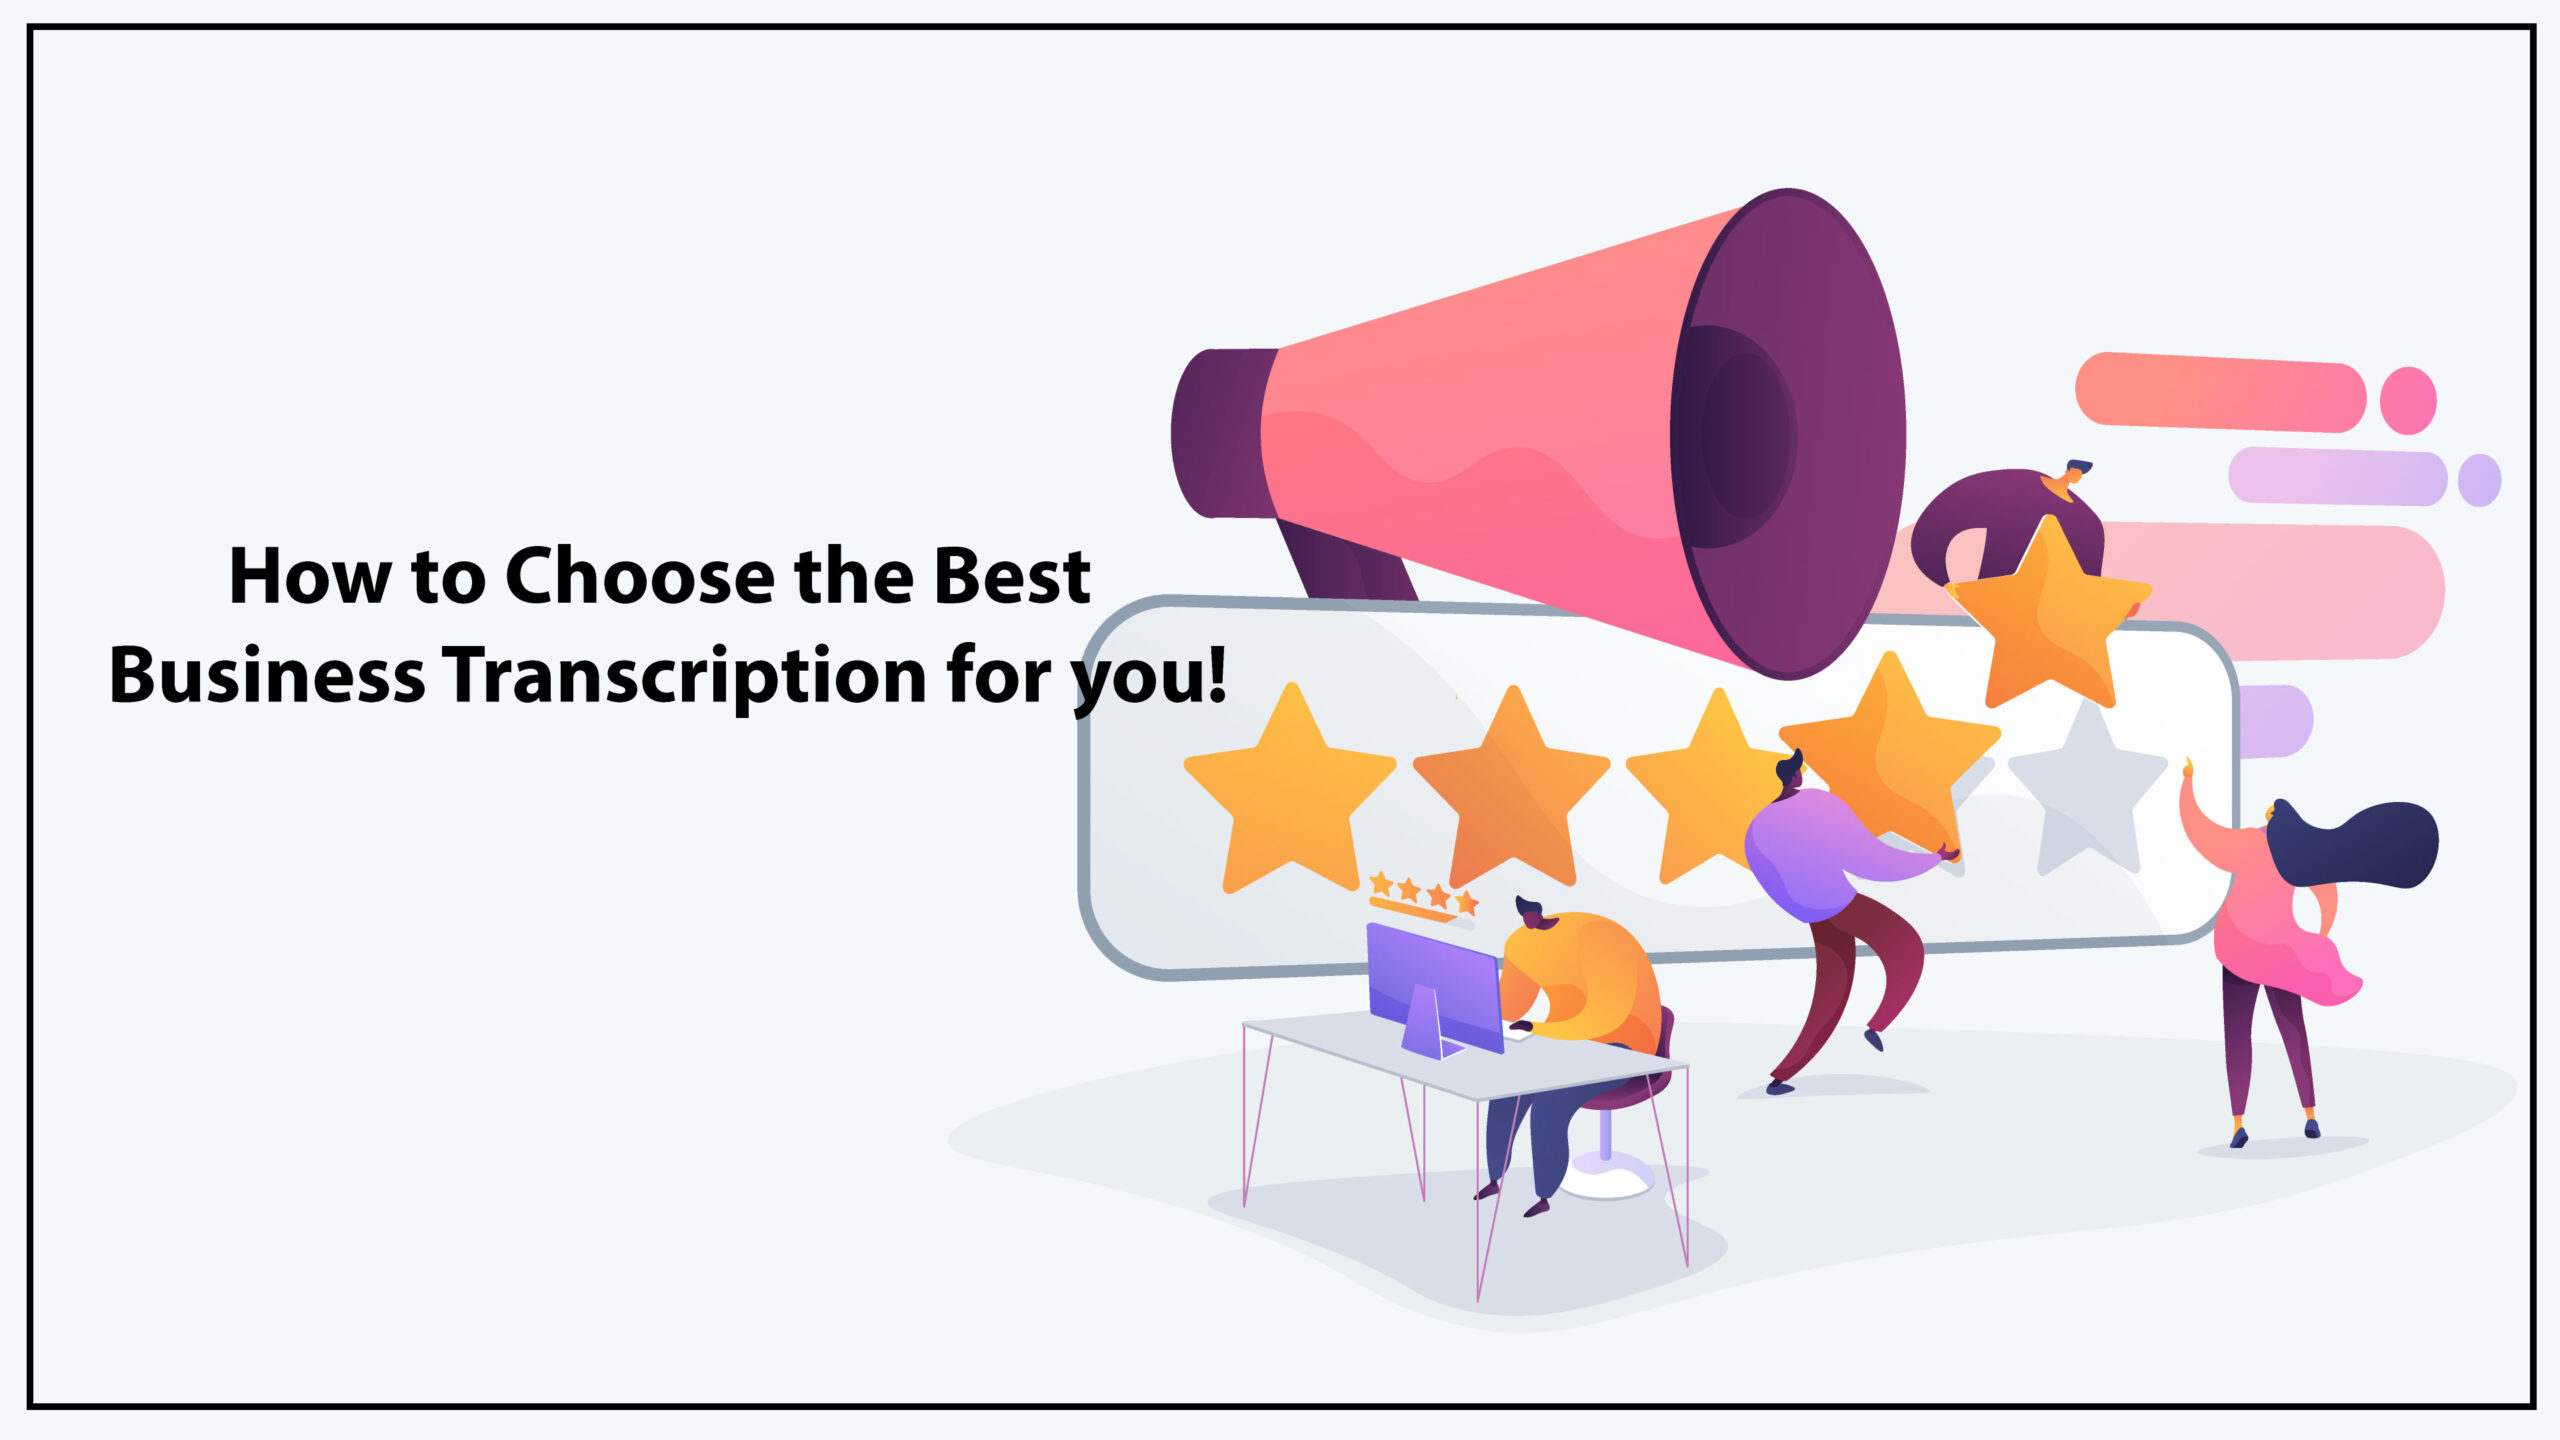 How to Choose the Best Business Transcription for you!